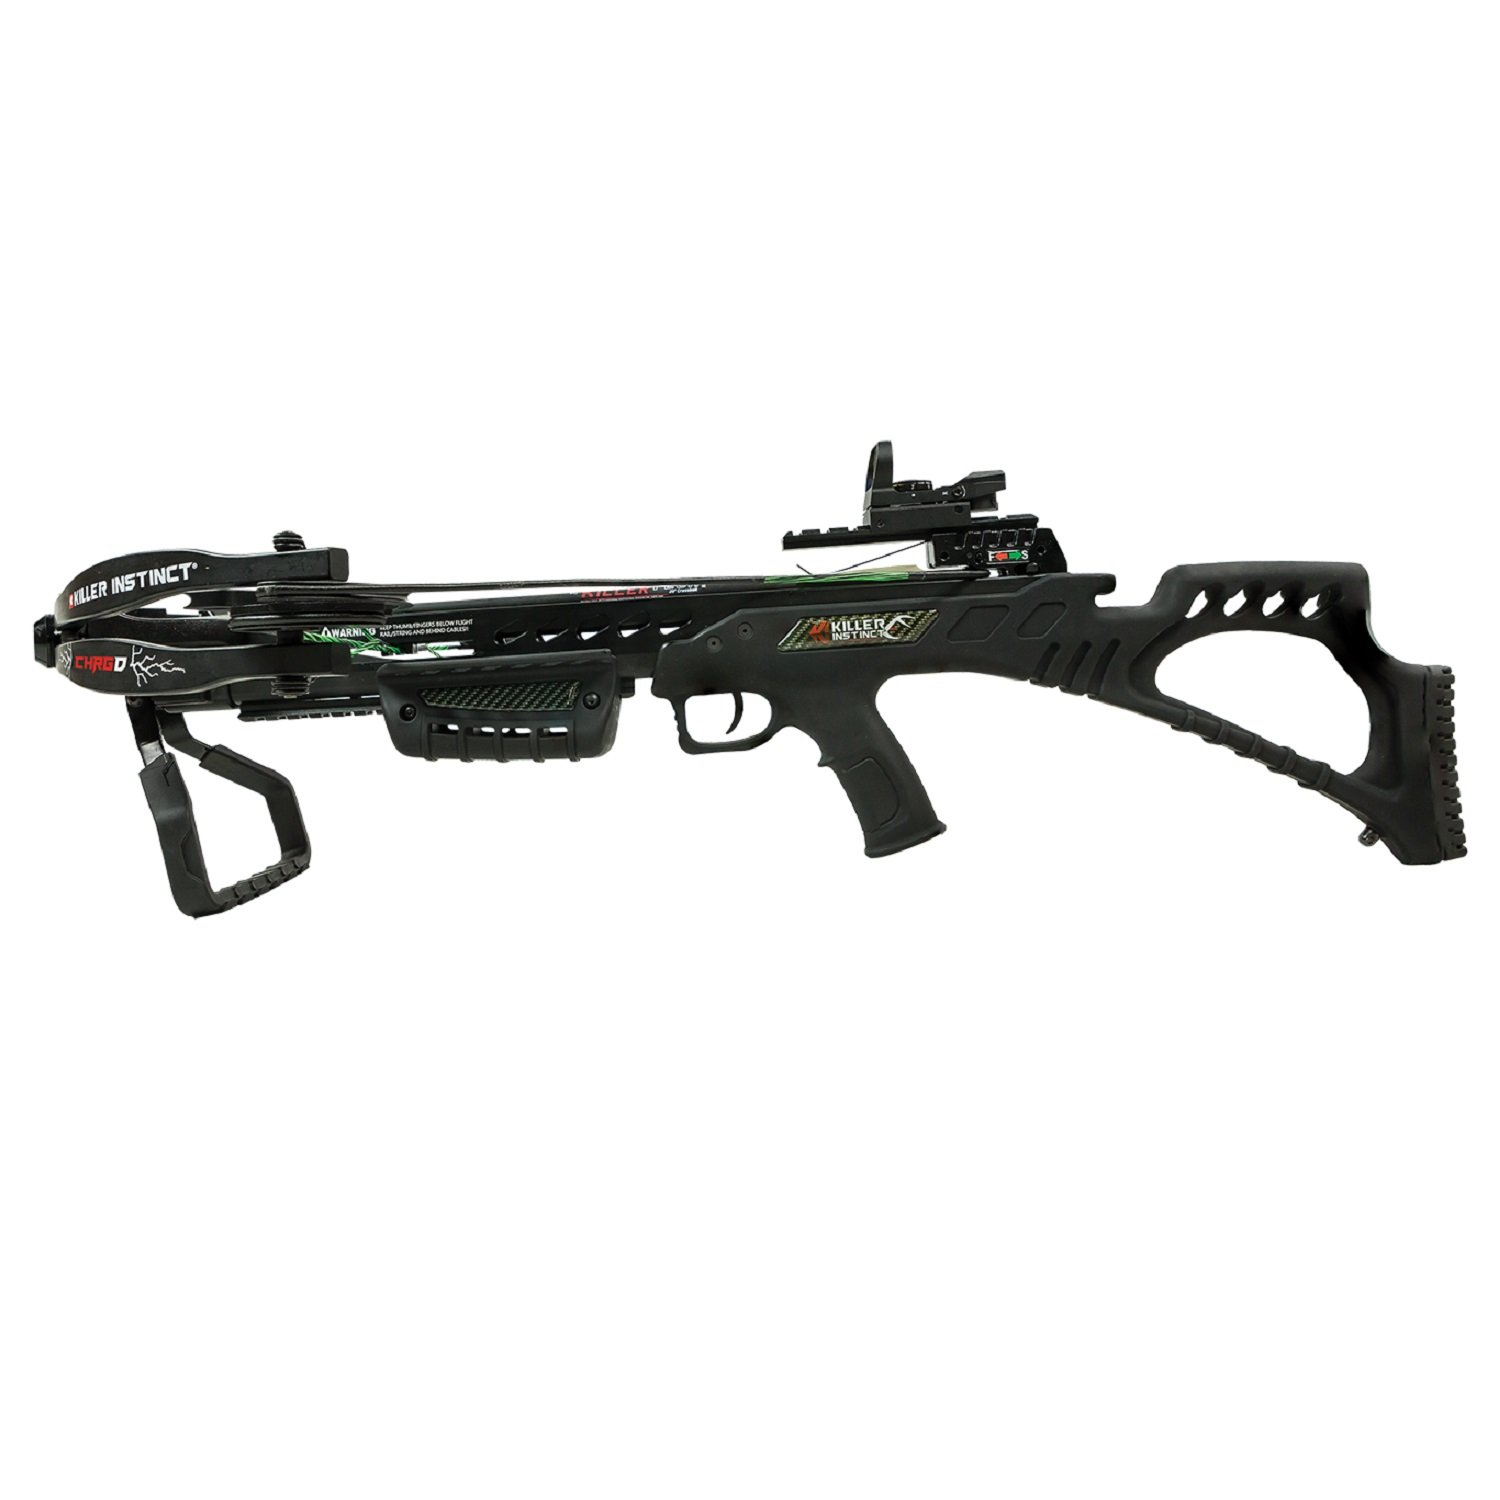 Killer Instinct CHRG'D 330 - High Performance Crossbow Package - Includes Quiver, Bolts, KI Lumix Red Dot Sight, and Rope Cocker - 3.5 lb RTT Trigger